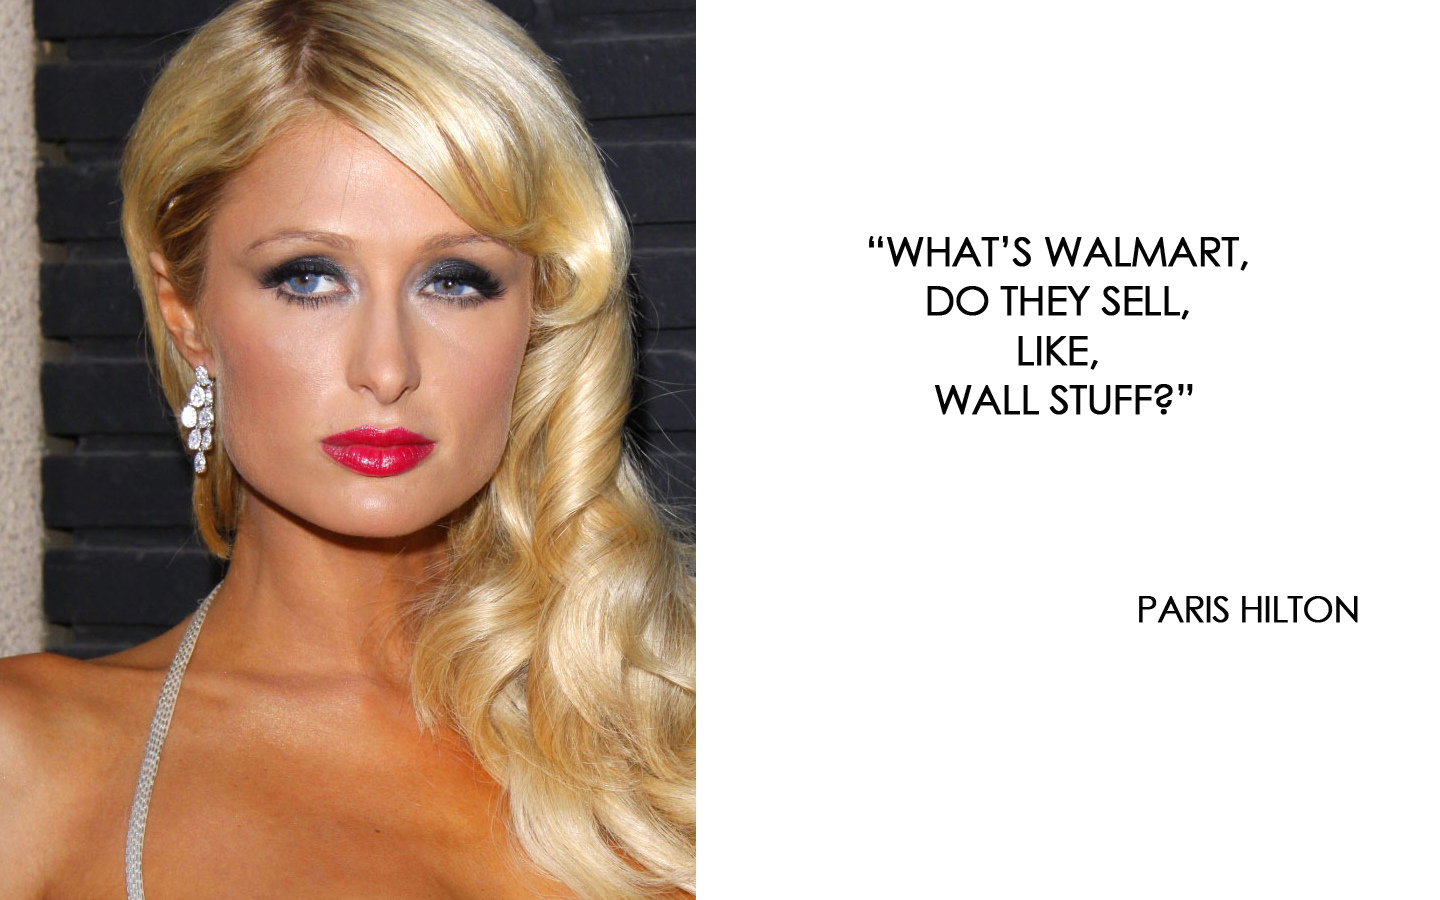 The 15 Dumbest Quotes By Famous People | LifeDaily